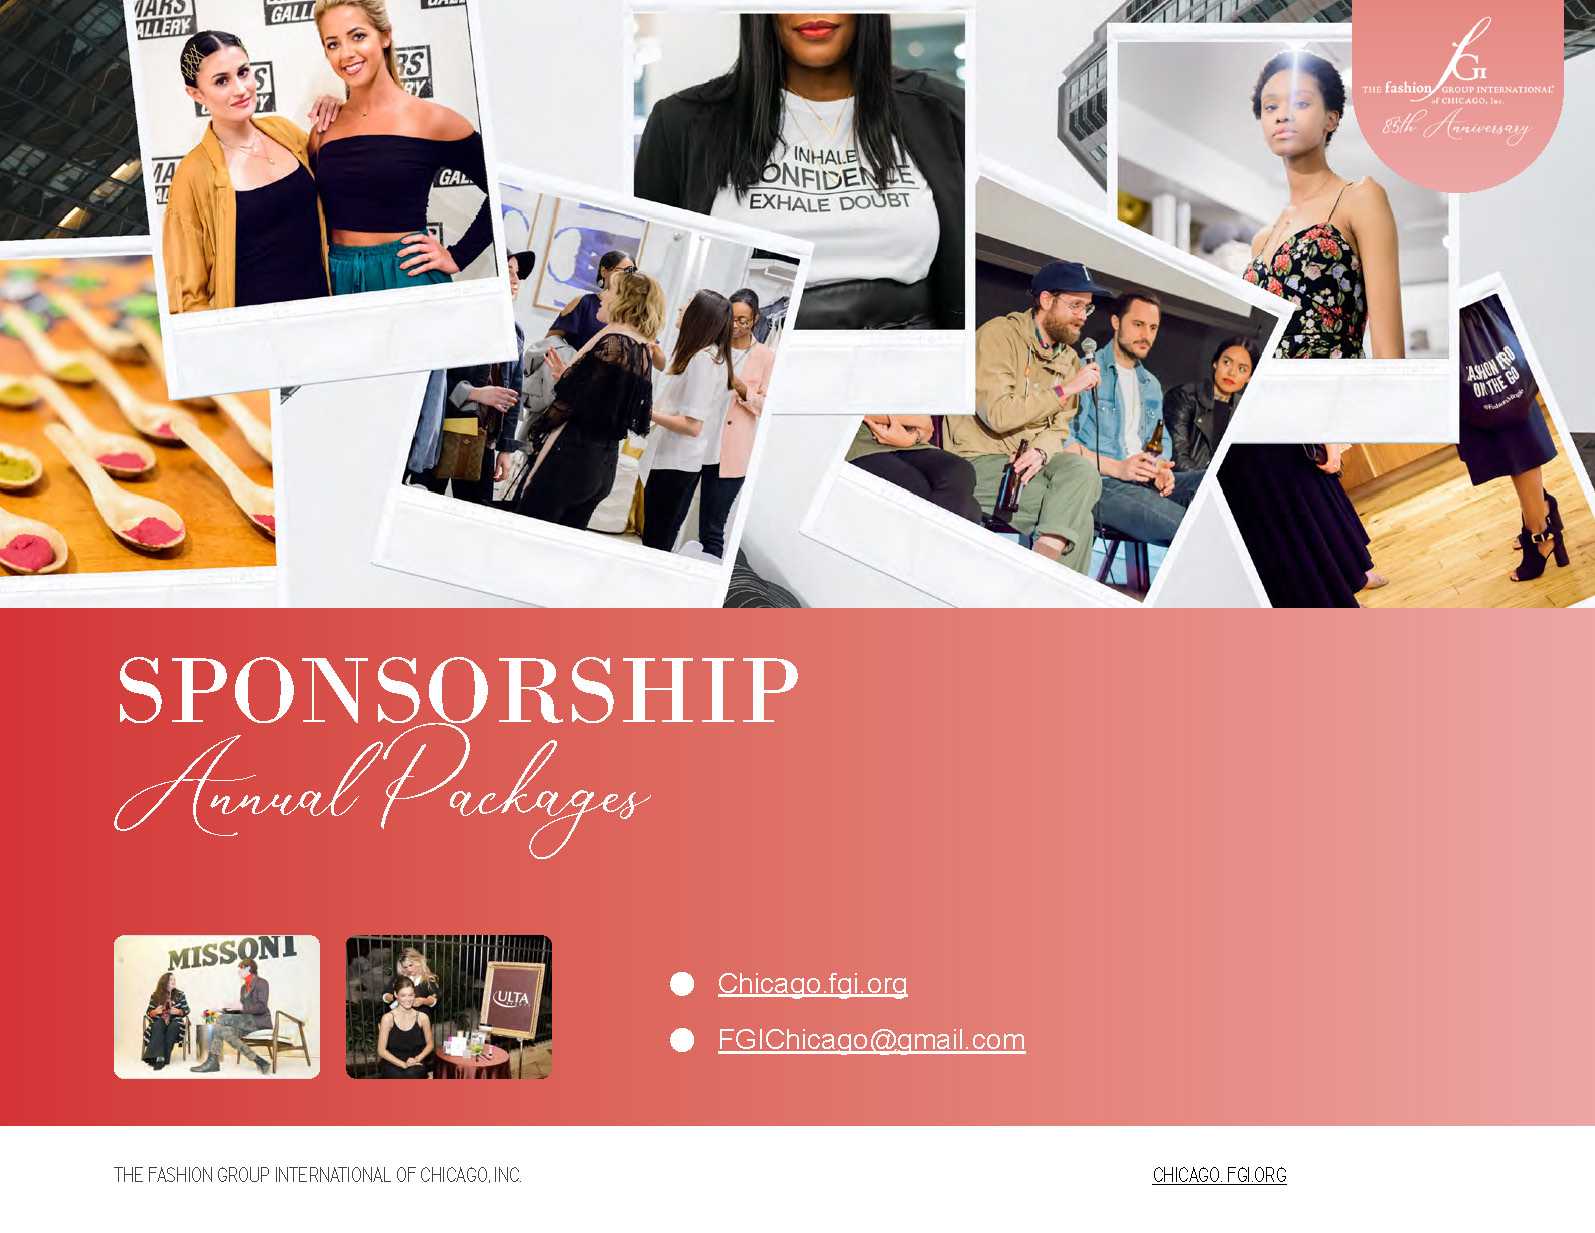 fgi chicago events sponsor sponsorship fashion design interiors home beauty events industry  networking